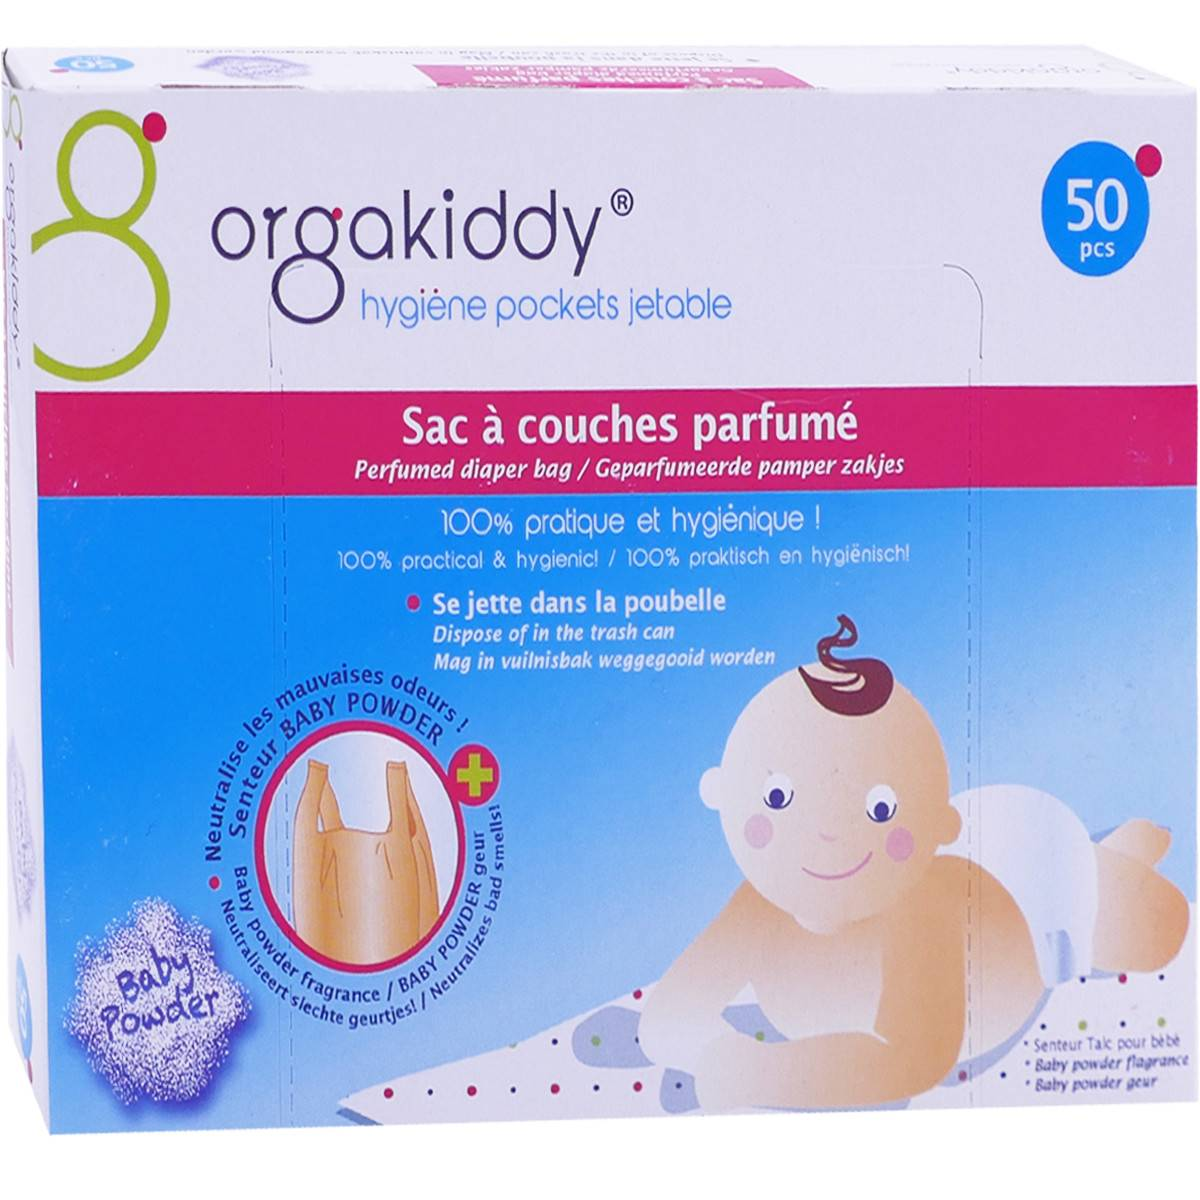 Orgakiddy 50 sacs a couches parfumes fraise